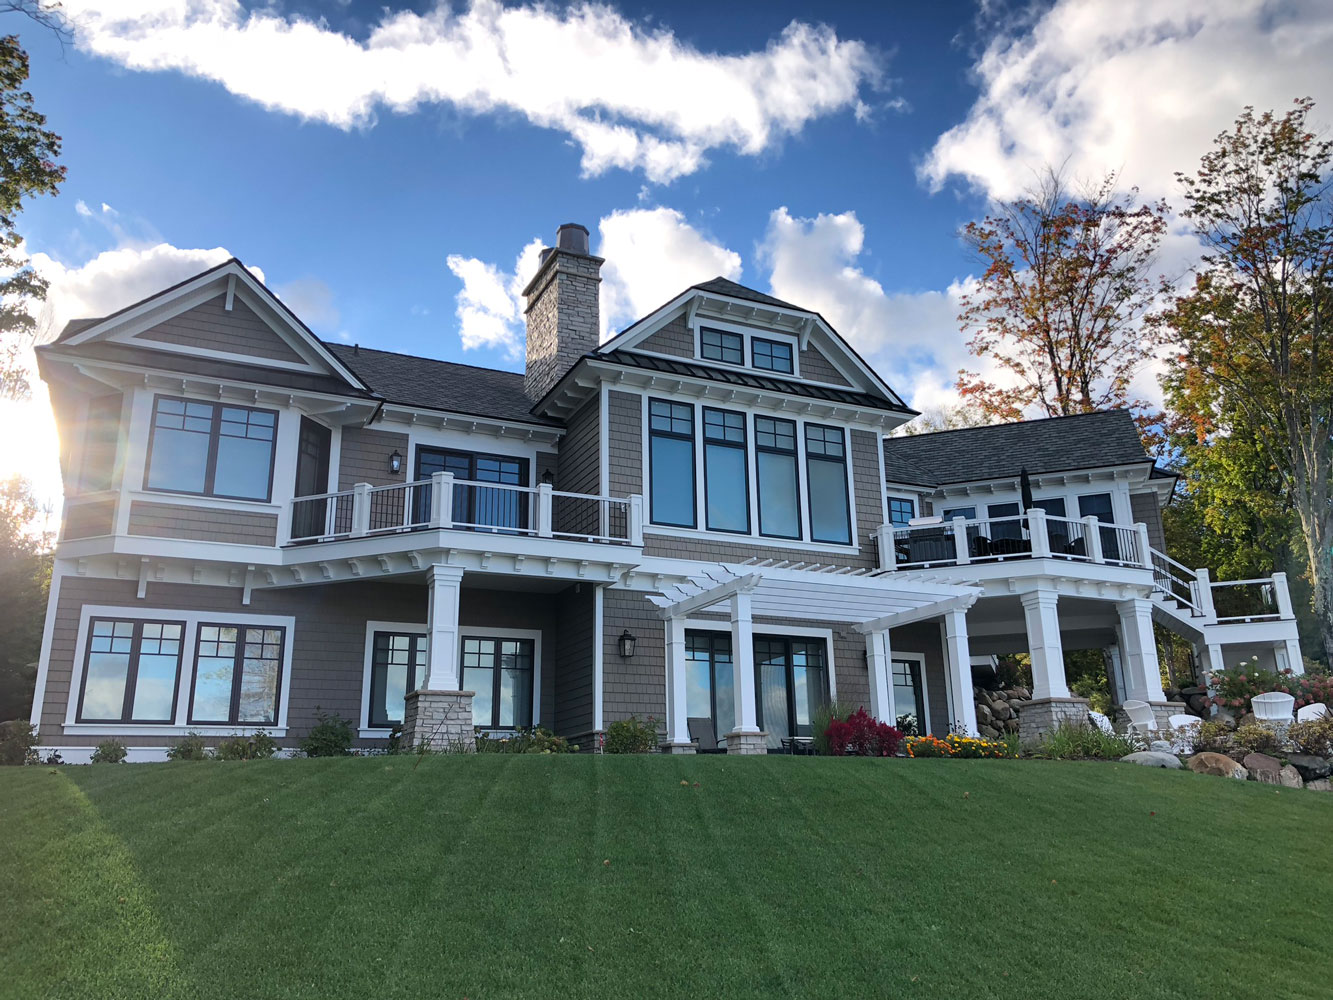 A house with clean windows in northern Michigan